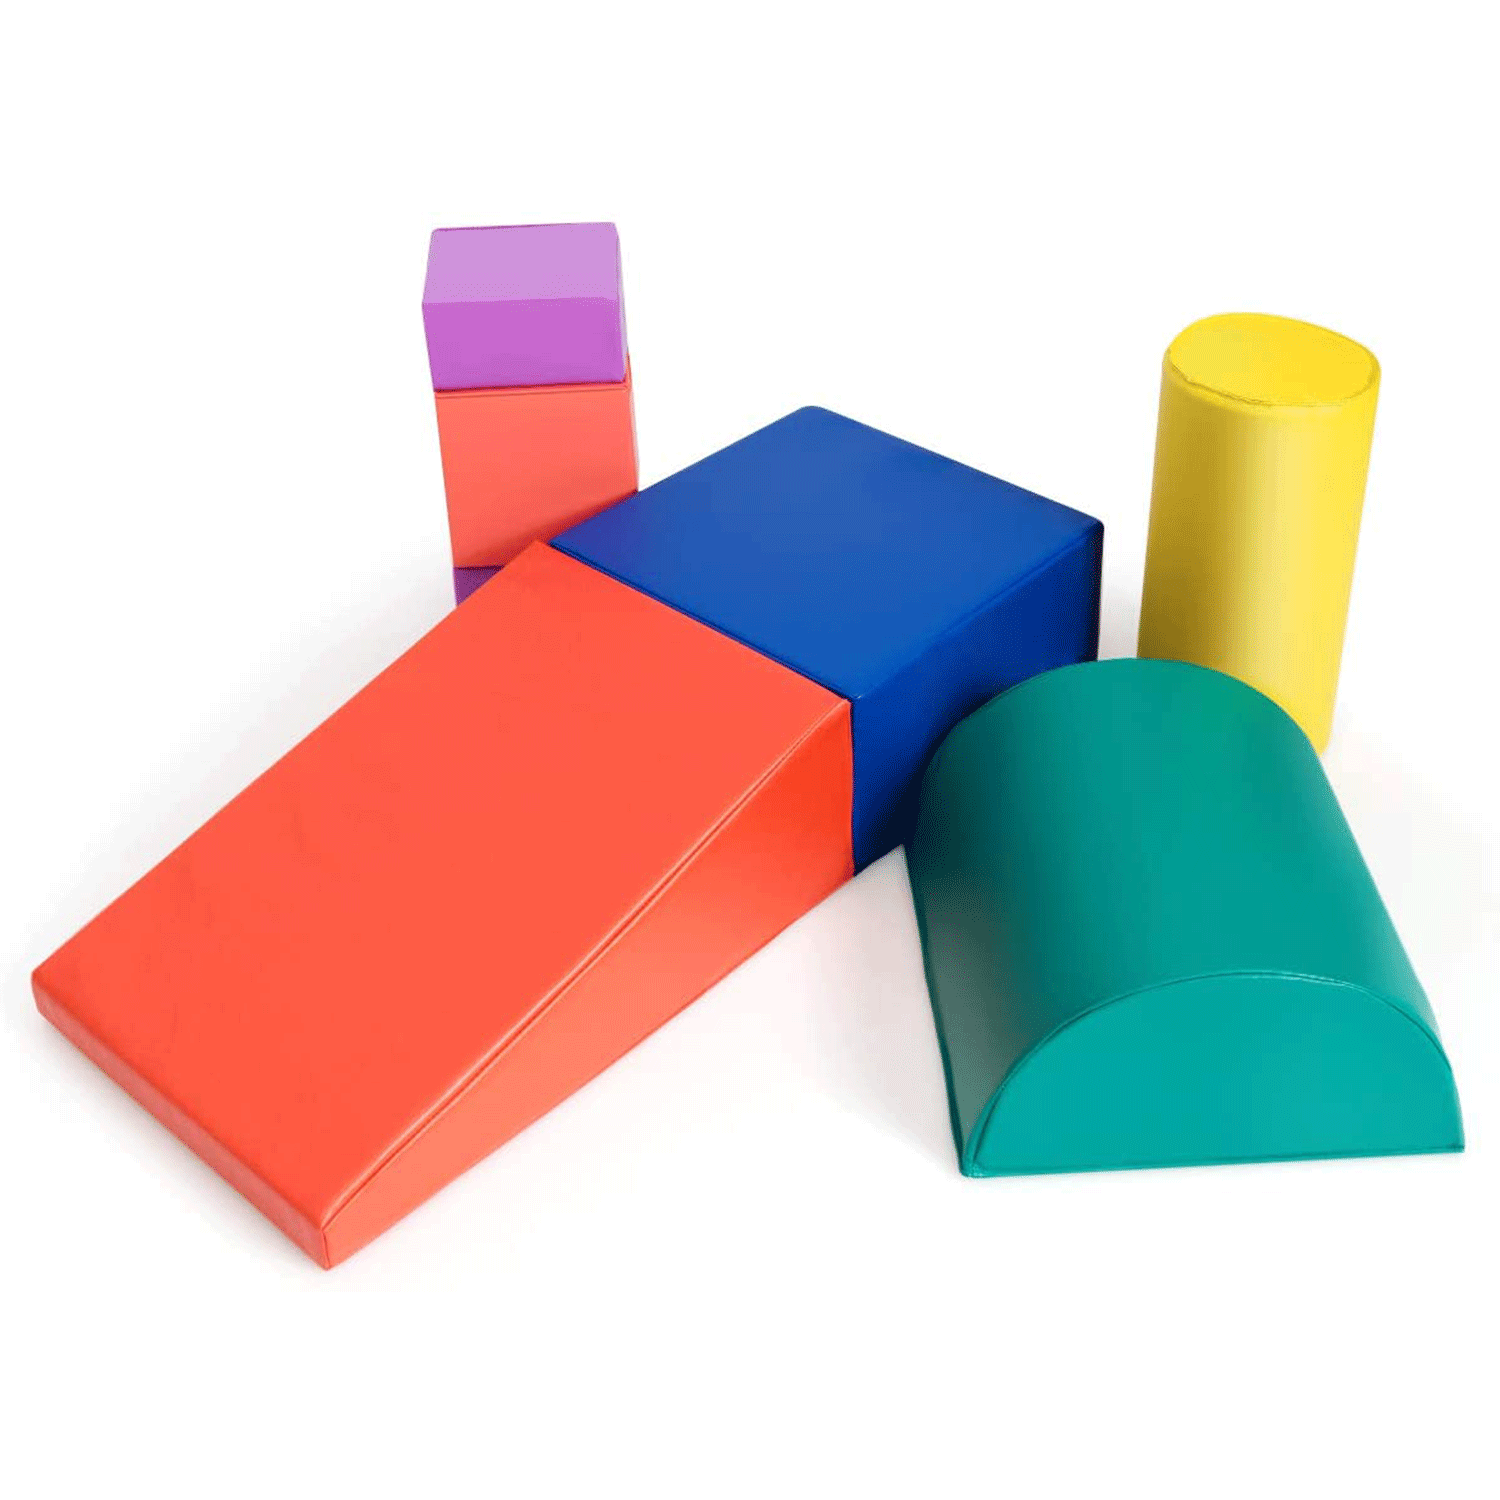 goplus-set-di-6-blocchi-cubi-psicomotricita-educativi-2.png